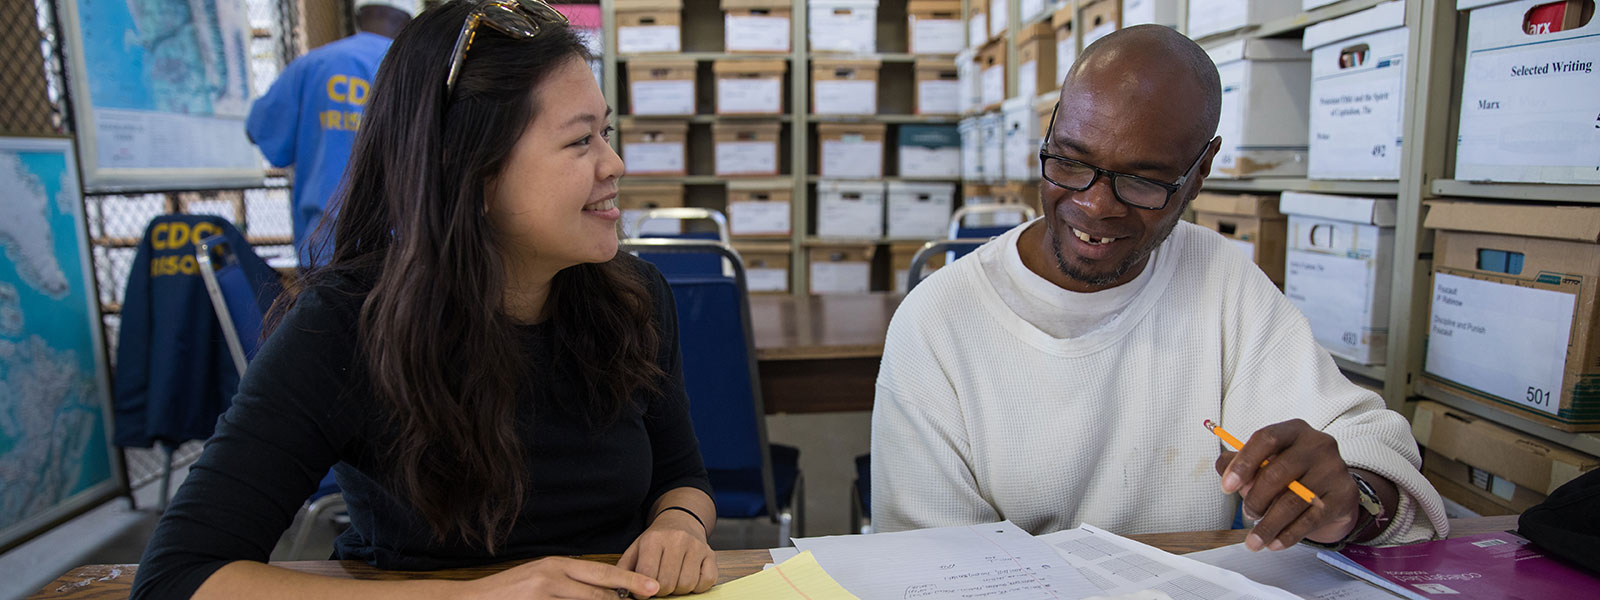 Faculty and student in study session at San Quentin